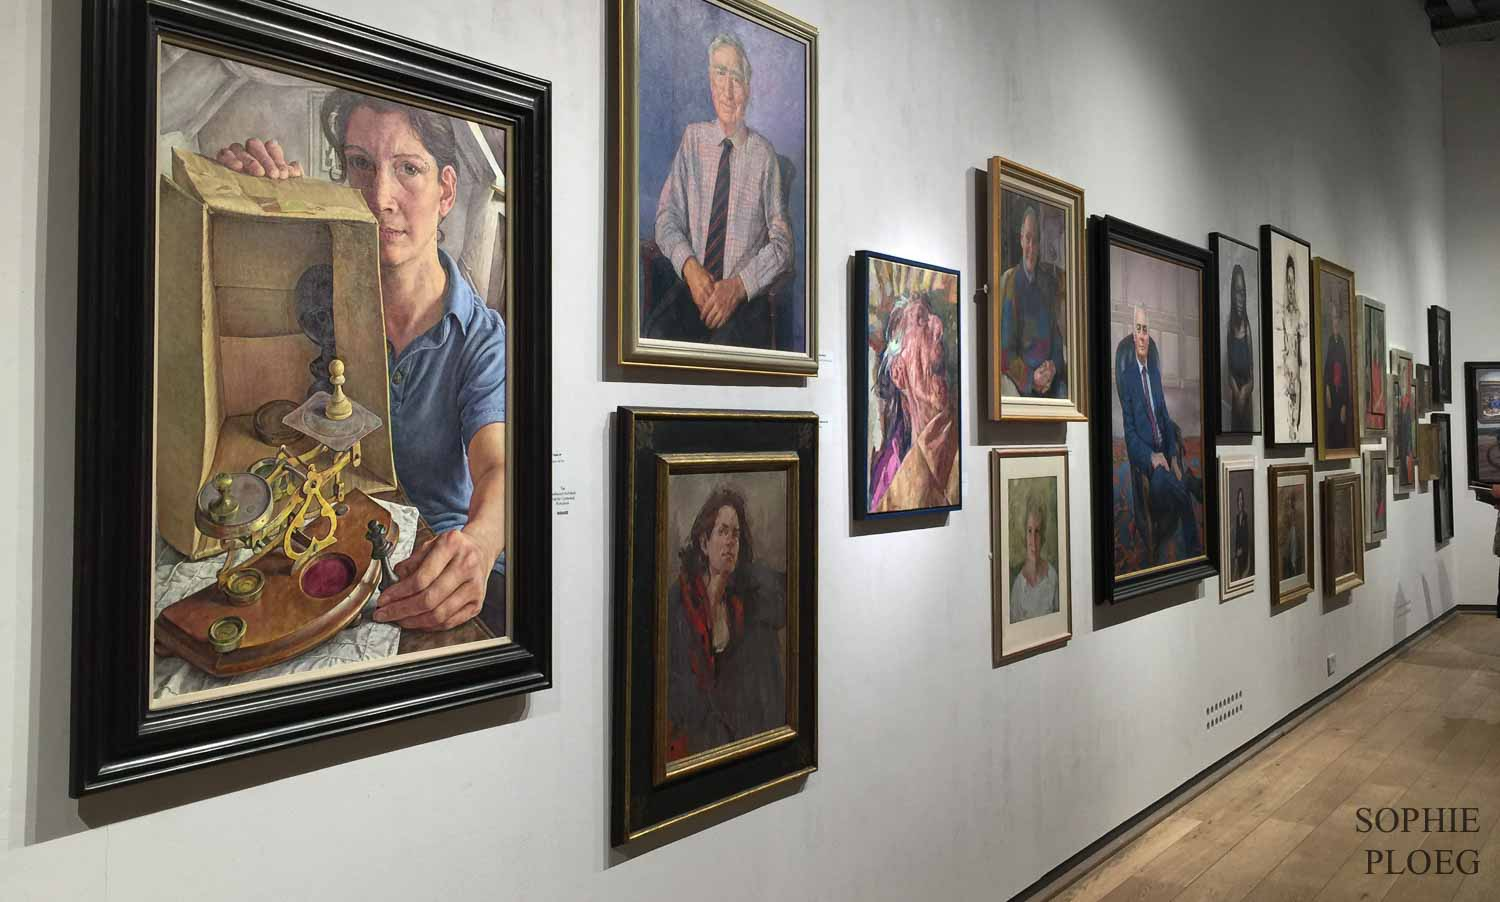 Royal Society of Portrait Painters, Mall Galleries, Sophie Ploeg